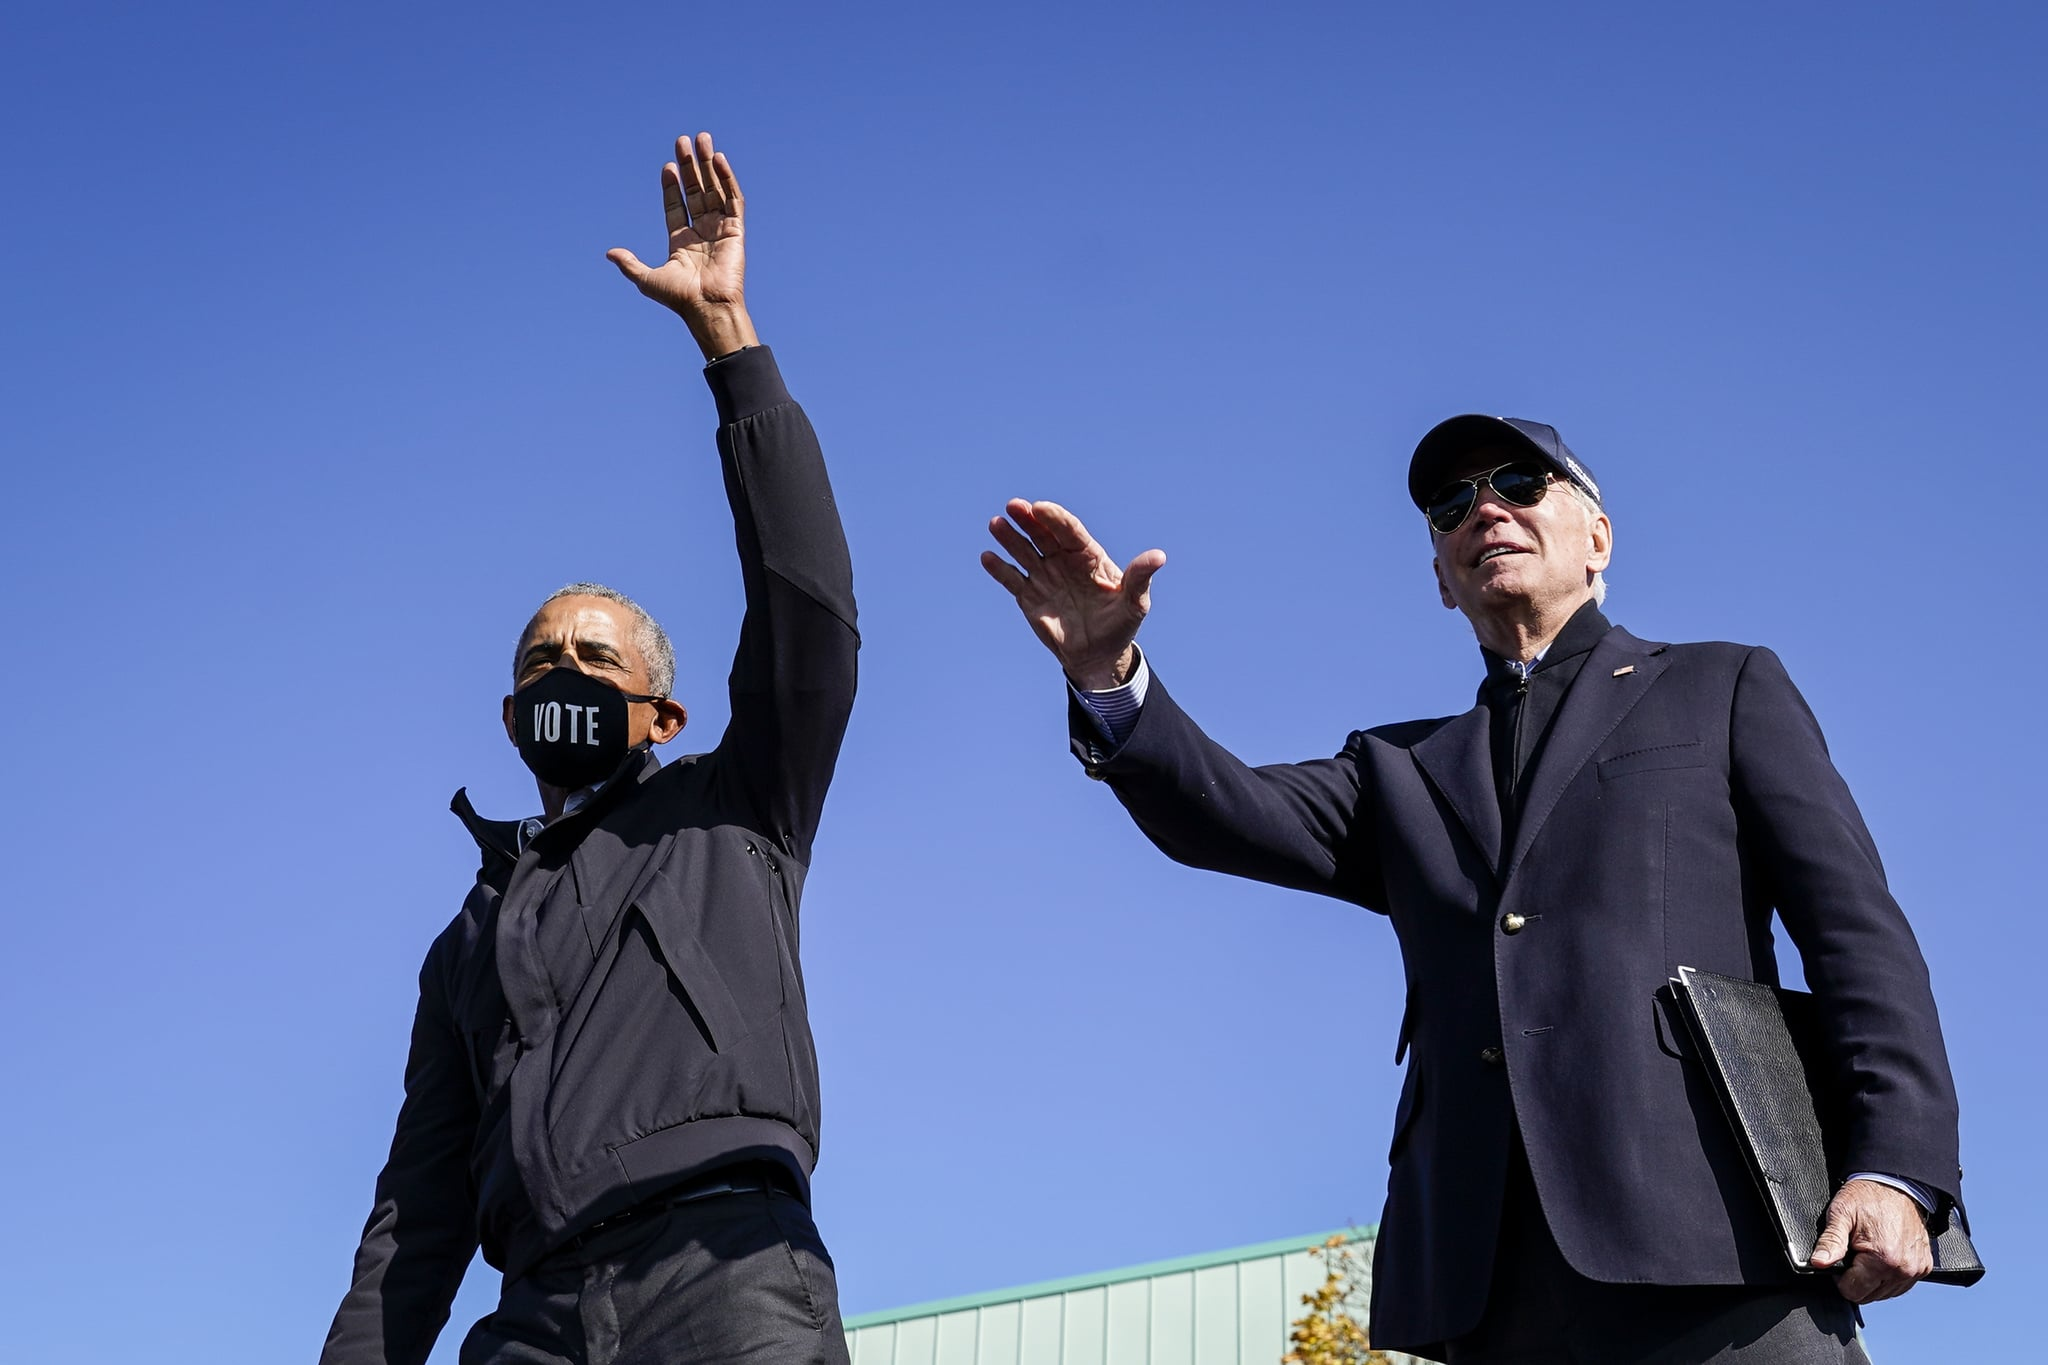 FLINT, MI - OCTOBER 31: Former U.S. President Barack Obama and Democratic presidential nominee Joe Biden wave to the crowd at the end of a drive-in campaign rally at Northwestern High School on October 31, 2020 in Flint, Michigan. Biden is campaigning with former President Obama on Saturday in Michigan, a battleground state that President Donald Trump narrowly won in 2016. (Photo by Drew Angerer/Getty Images)